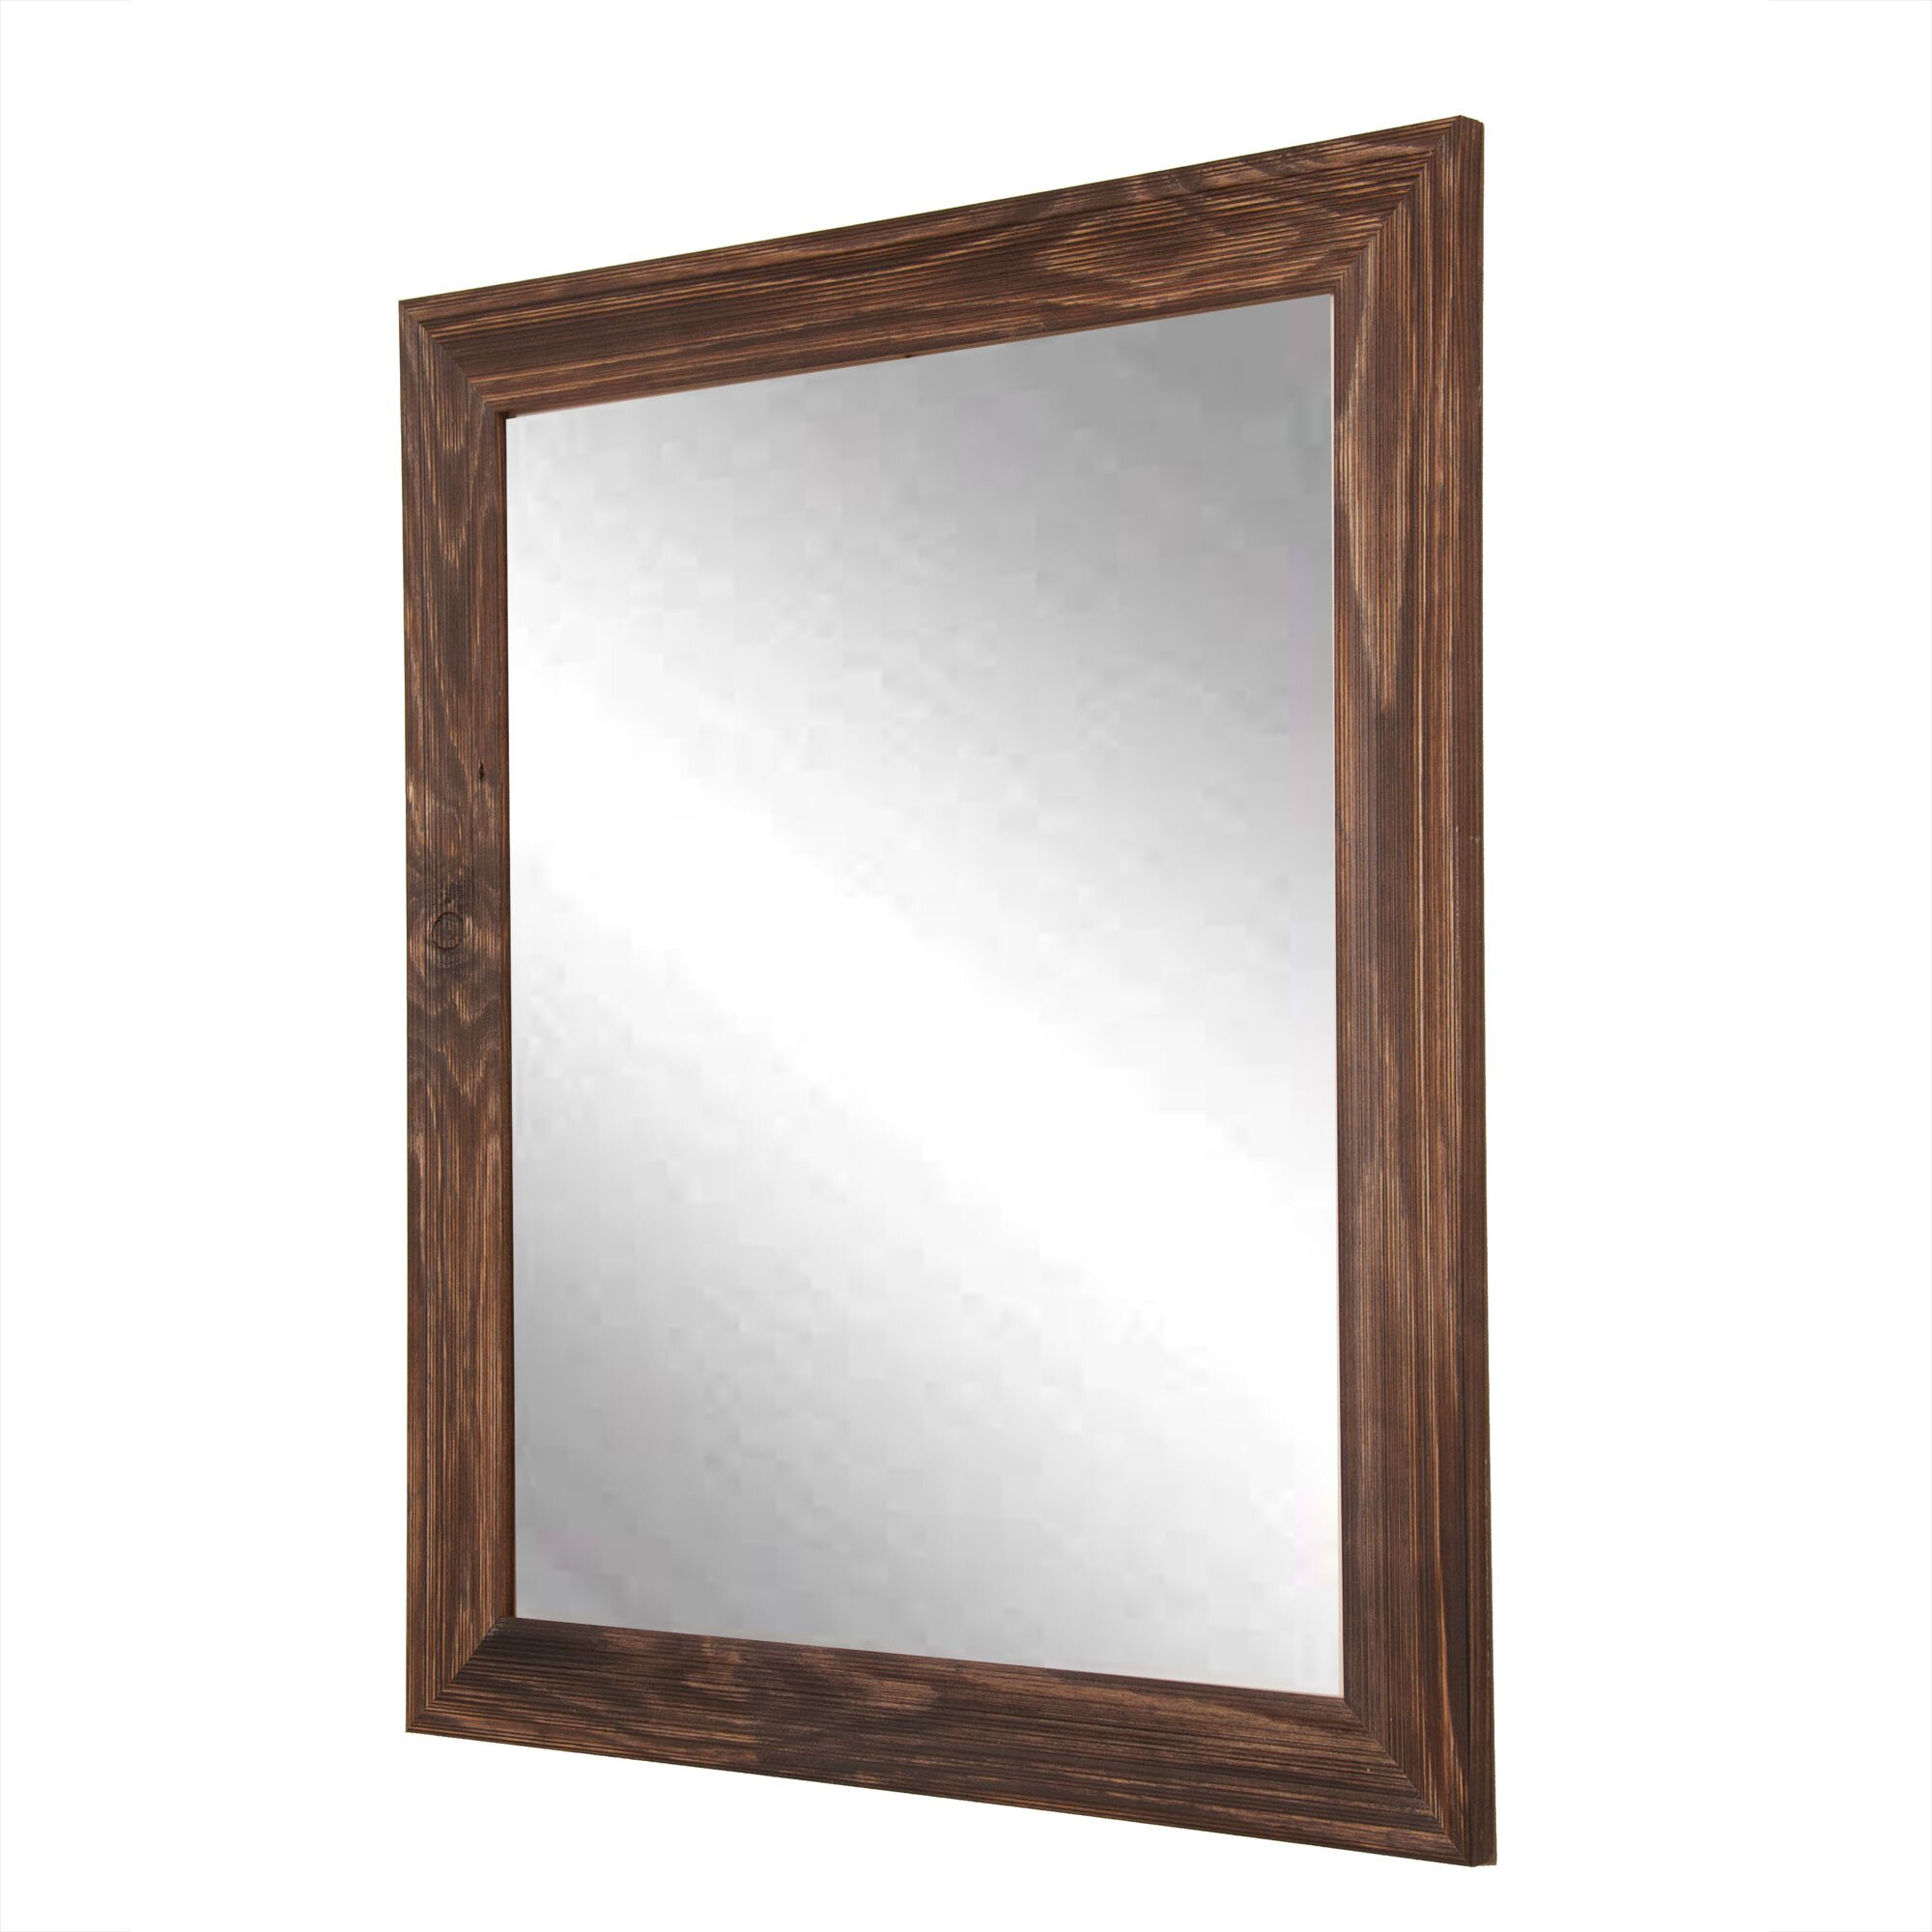 Brandtworksllc rustic espresso wall mirror wayfair for Rustic mirror